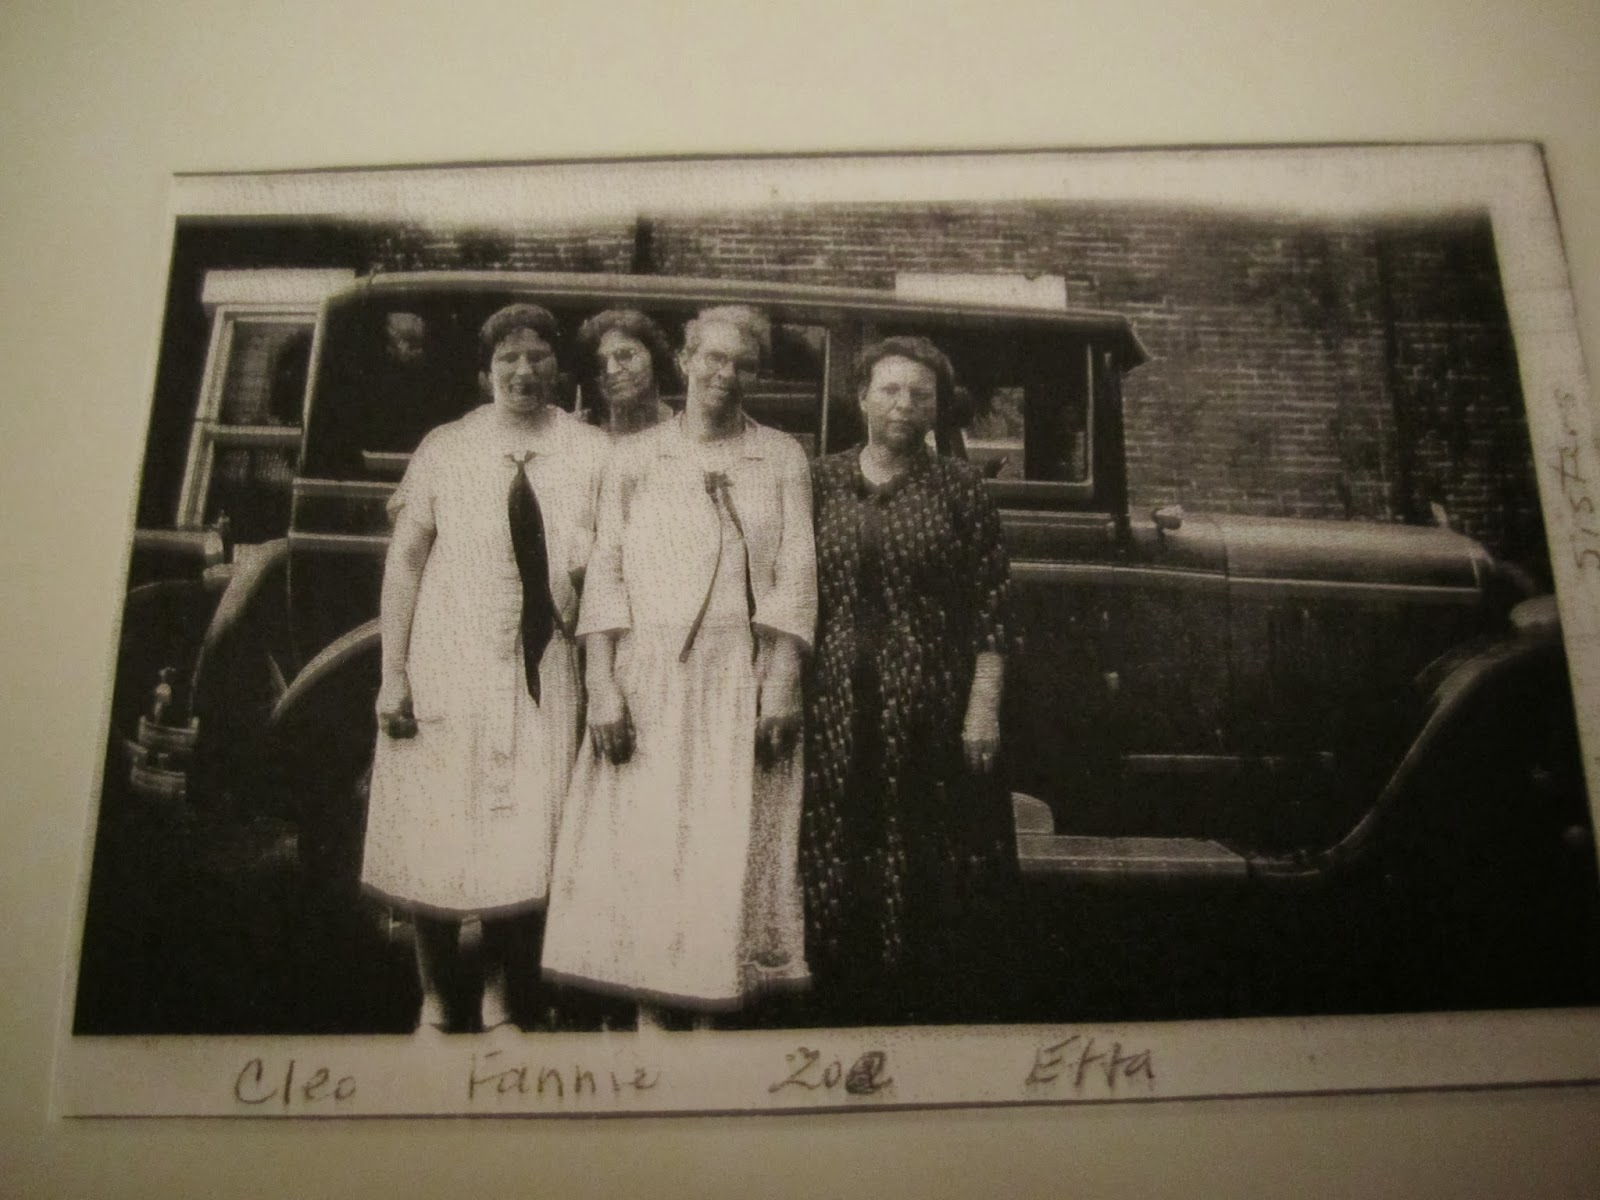 Climbing My Family Tree: The Hartman Girls: Cleo Duffield, Fannie (Hart) Erwin, Zoe Rader And Etta Archer